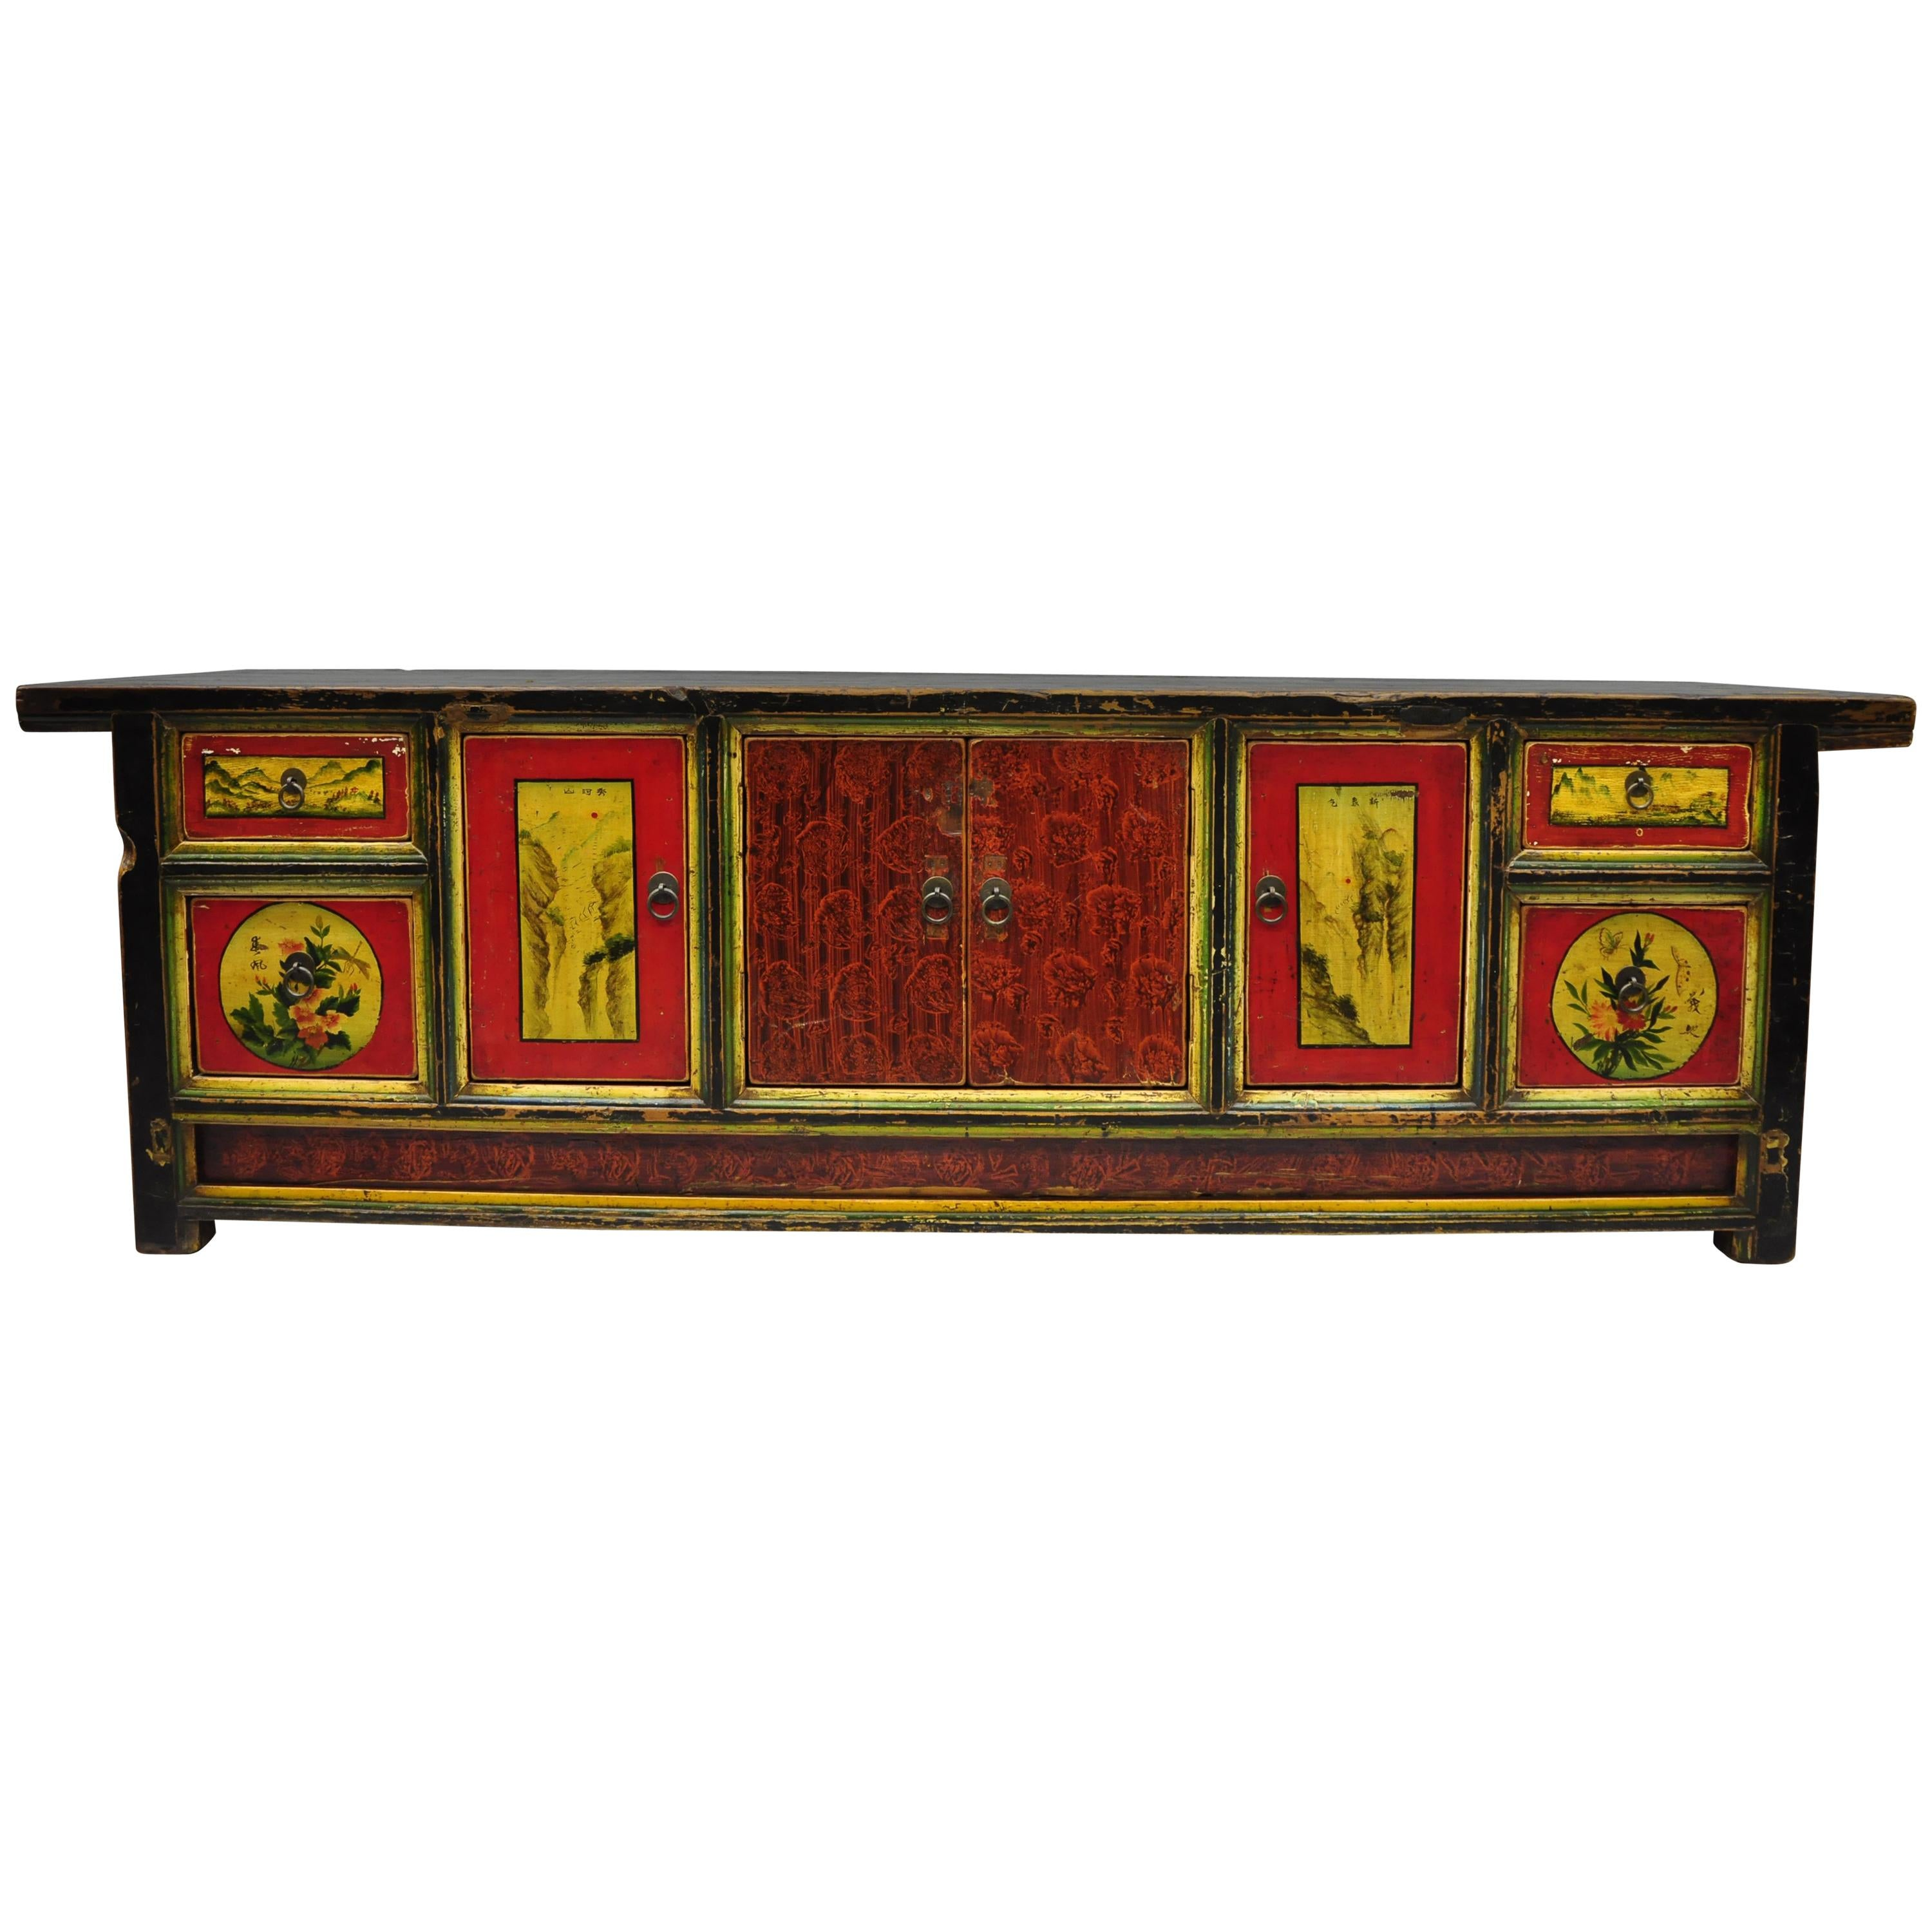 Charmant Hand Painted Pine Wood Mongolian Coffer Credenza Red Black Green Low Cabinet  For Sale